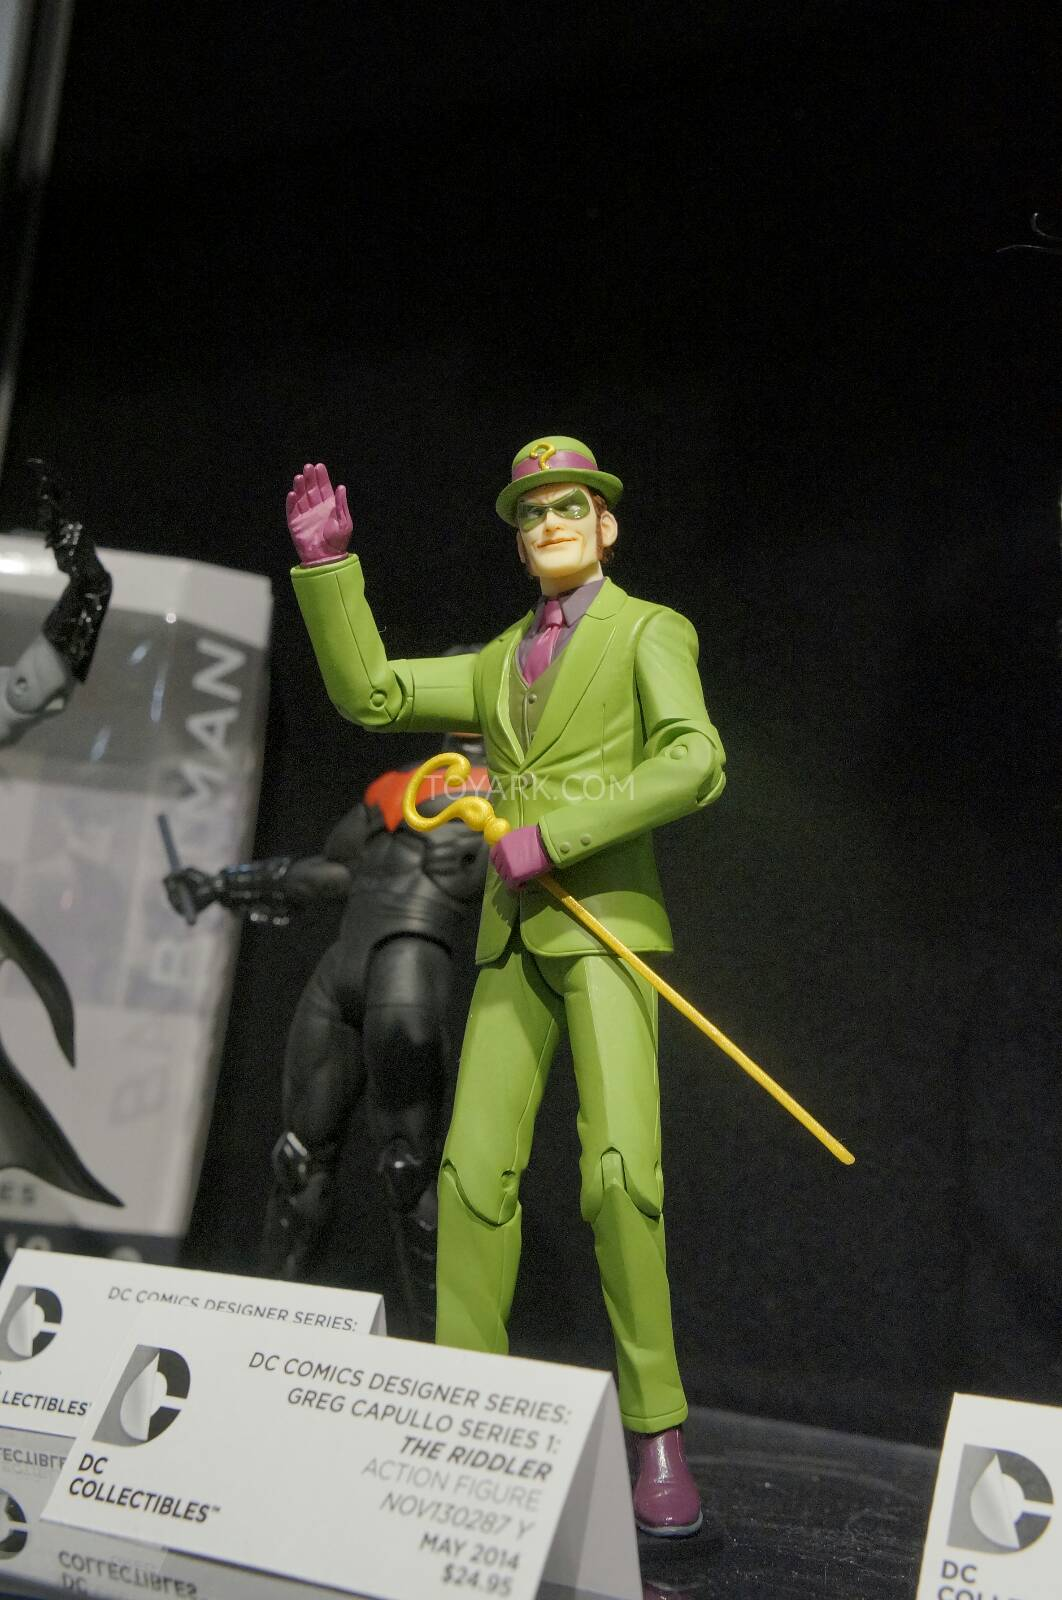 [Toy Fair 2014] DC Collectibles Toy-Fair-2014-DC-Collectibles-092